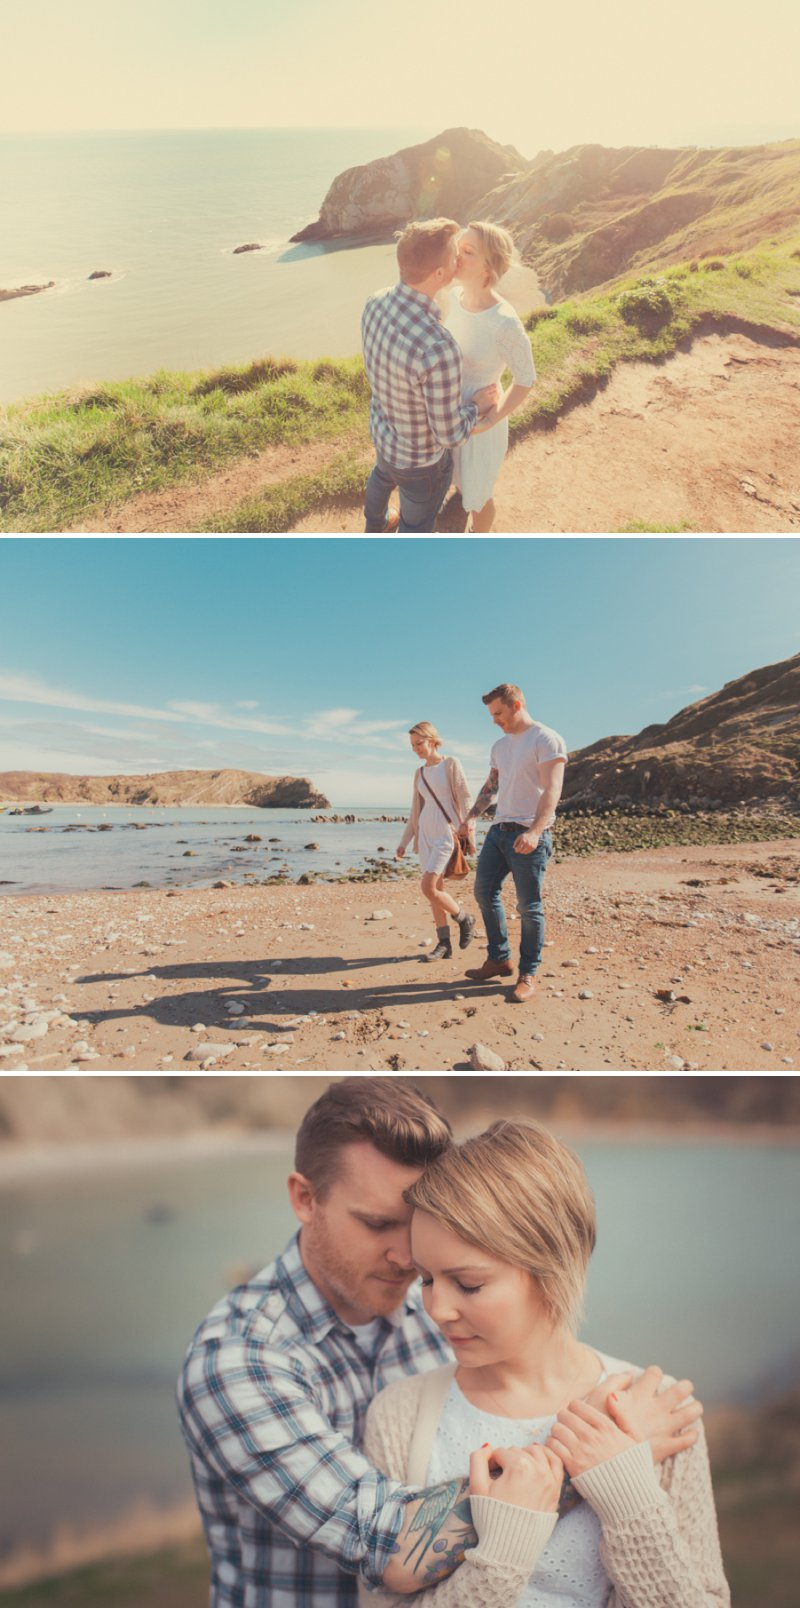 Engagement Shoot From James Green Photography At Lulworth Cove And Durdle Door On The Jurassic Coast 1 Magical Light On The Jurassic Coast.